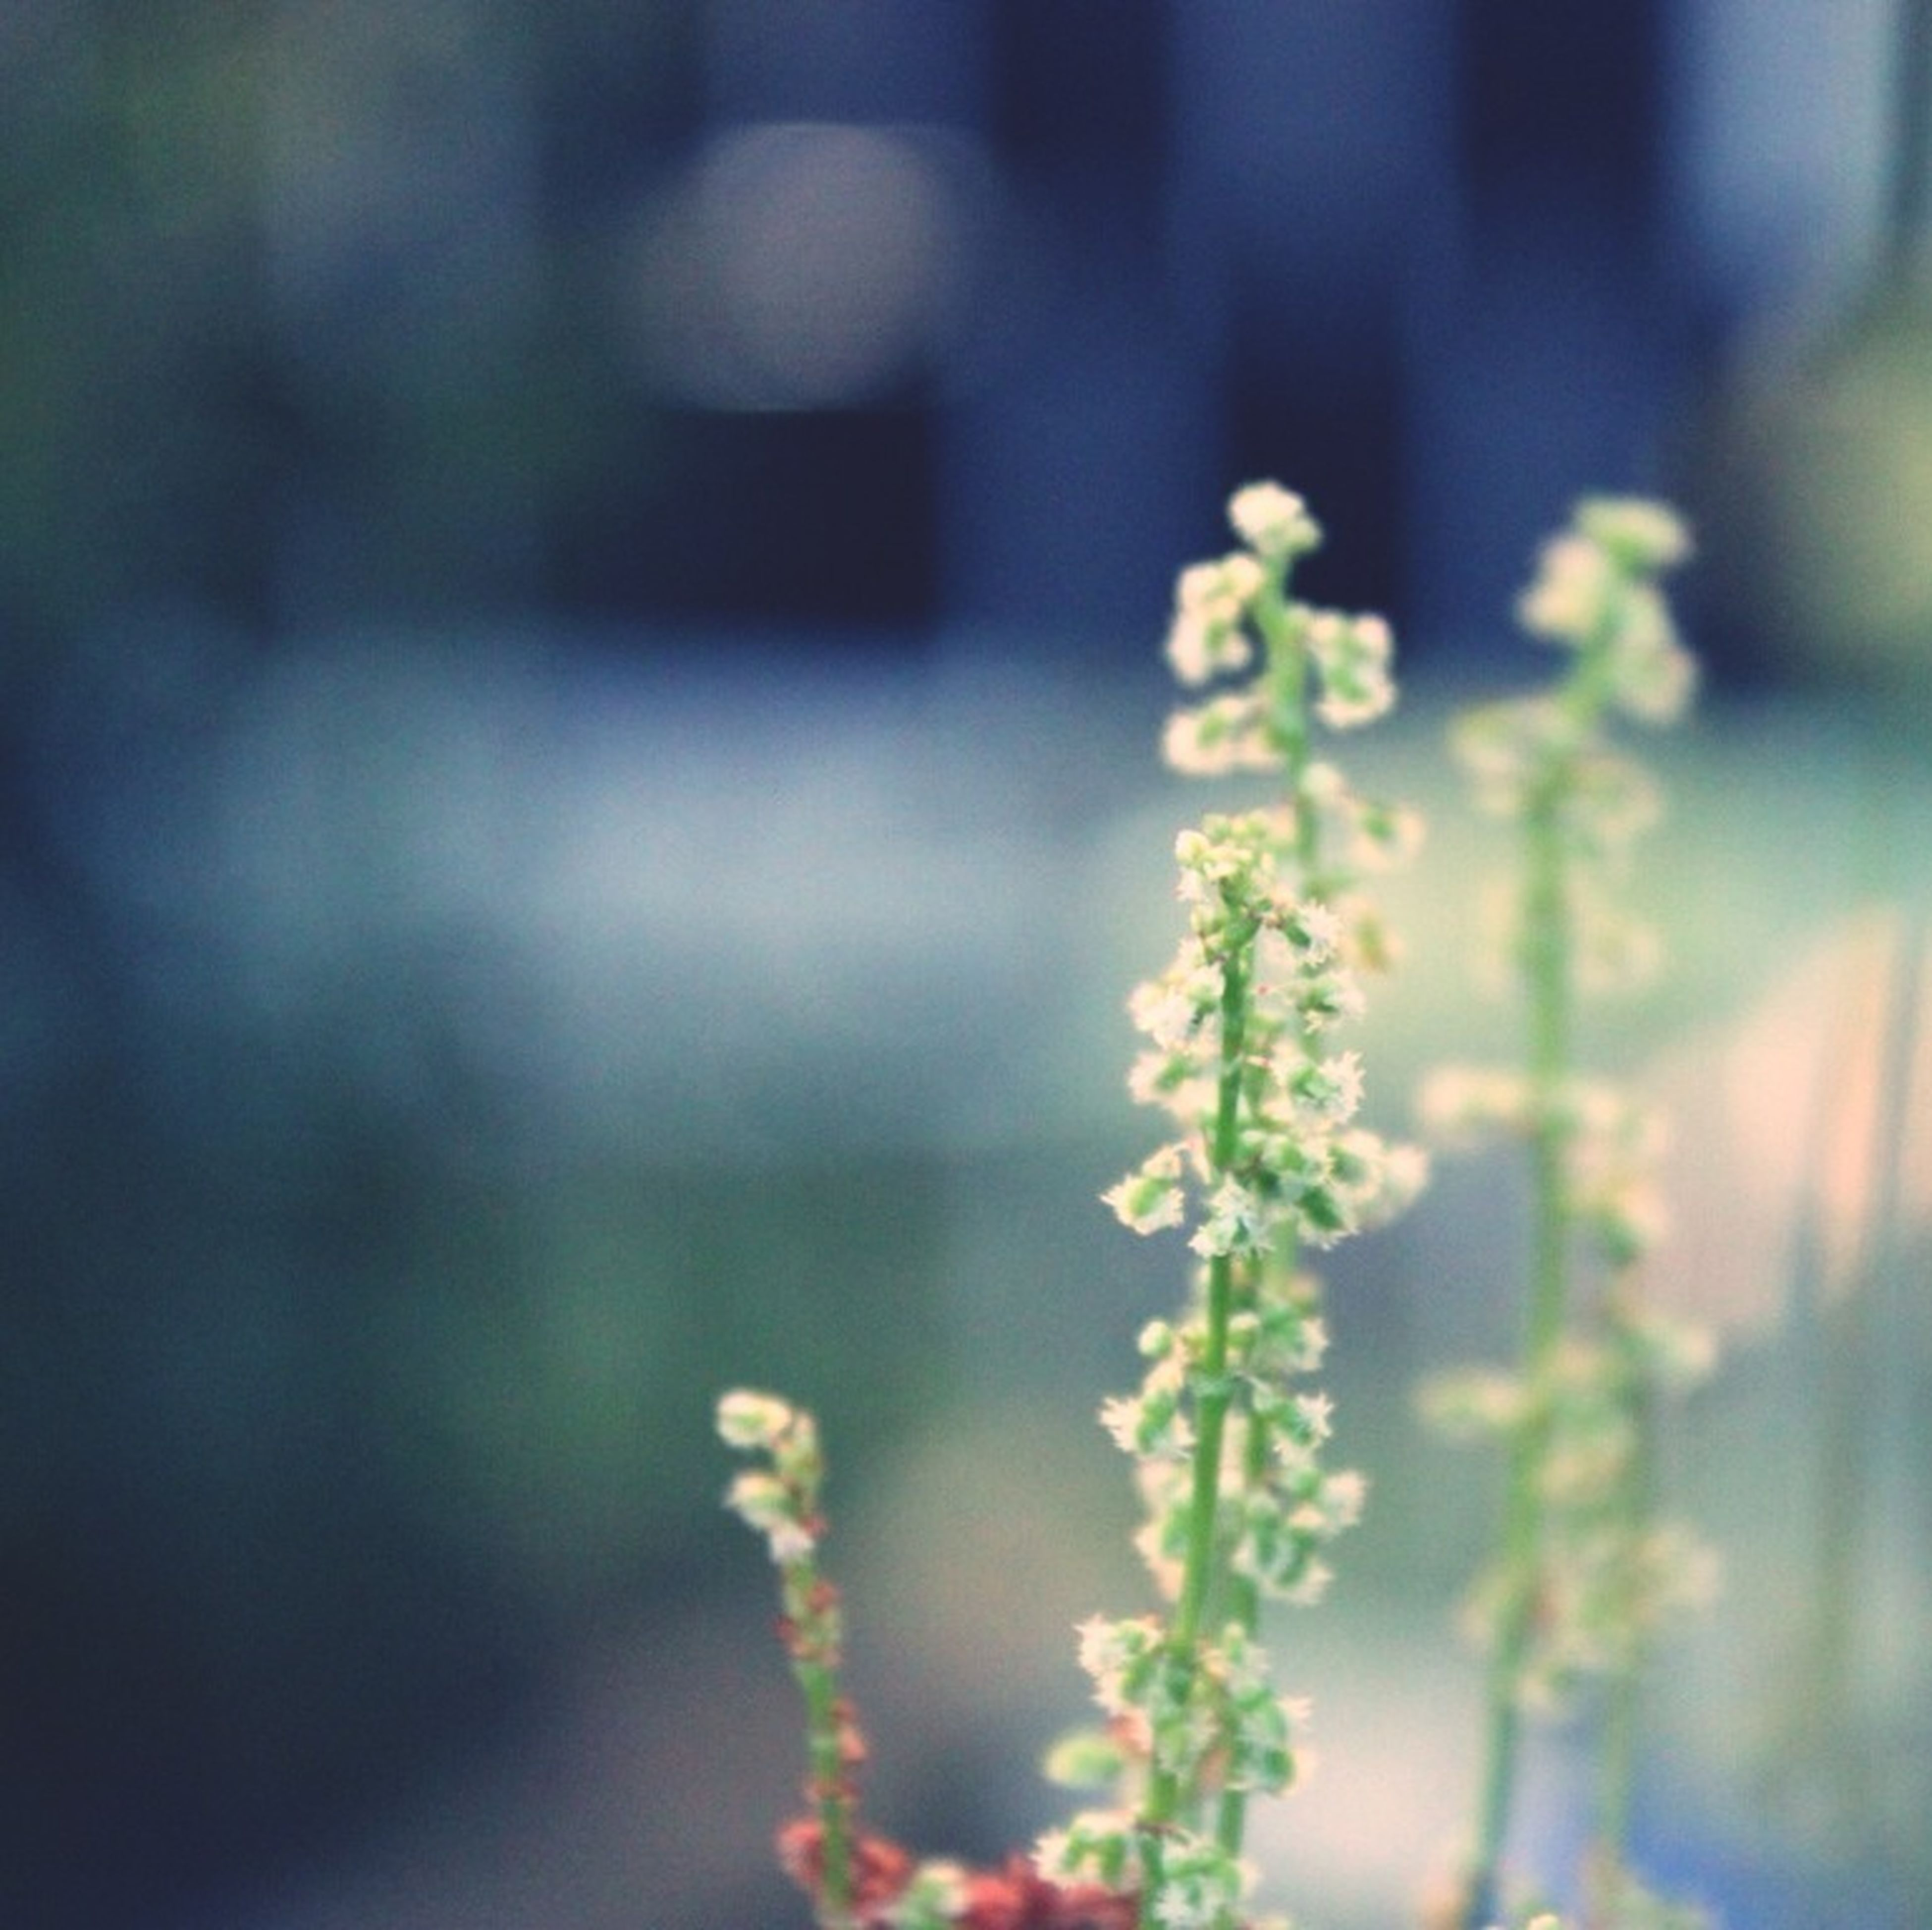 flower, freshness, fragility, focus on foreground, petal, growth, flower head, beauty in nature, close-up, stem, plant, white color, selective focus, blooming, nature, bud, in bloom, blossom, day, botany